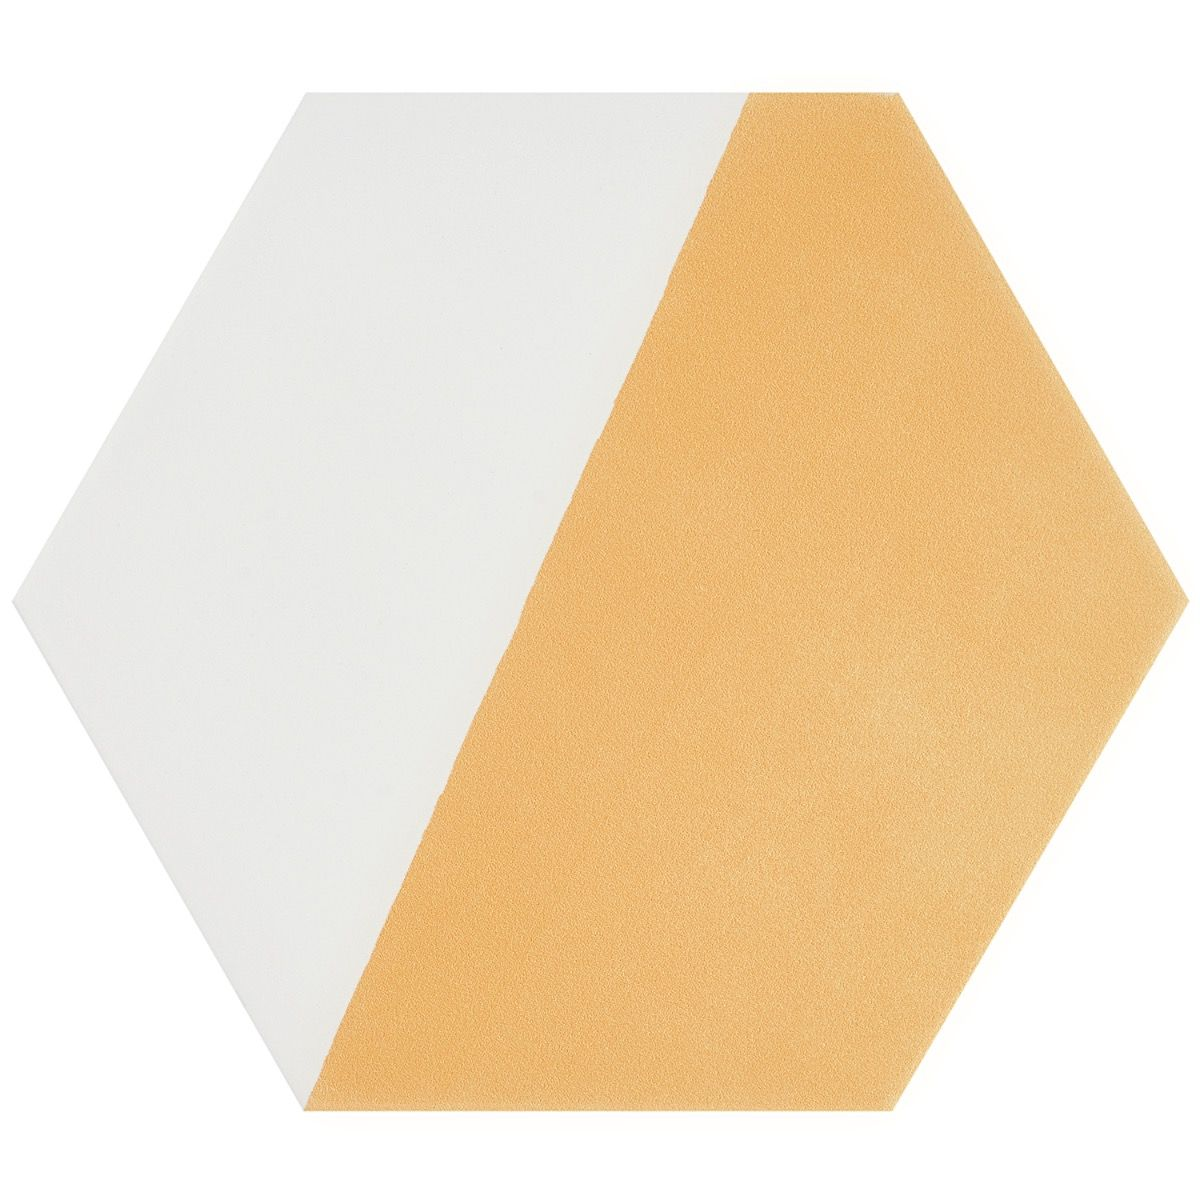 HexArt Pop Yellow 8